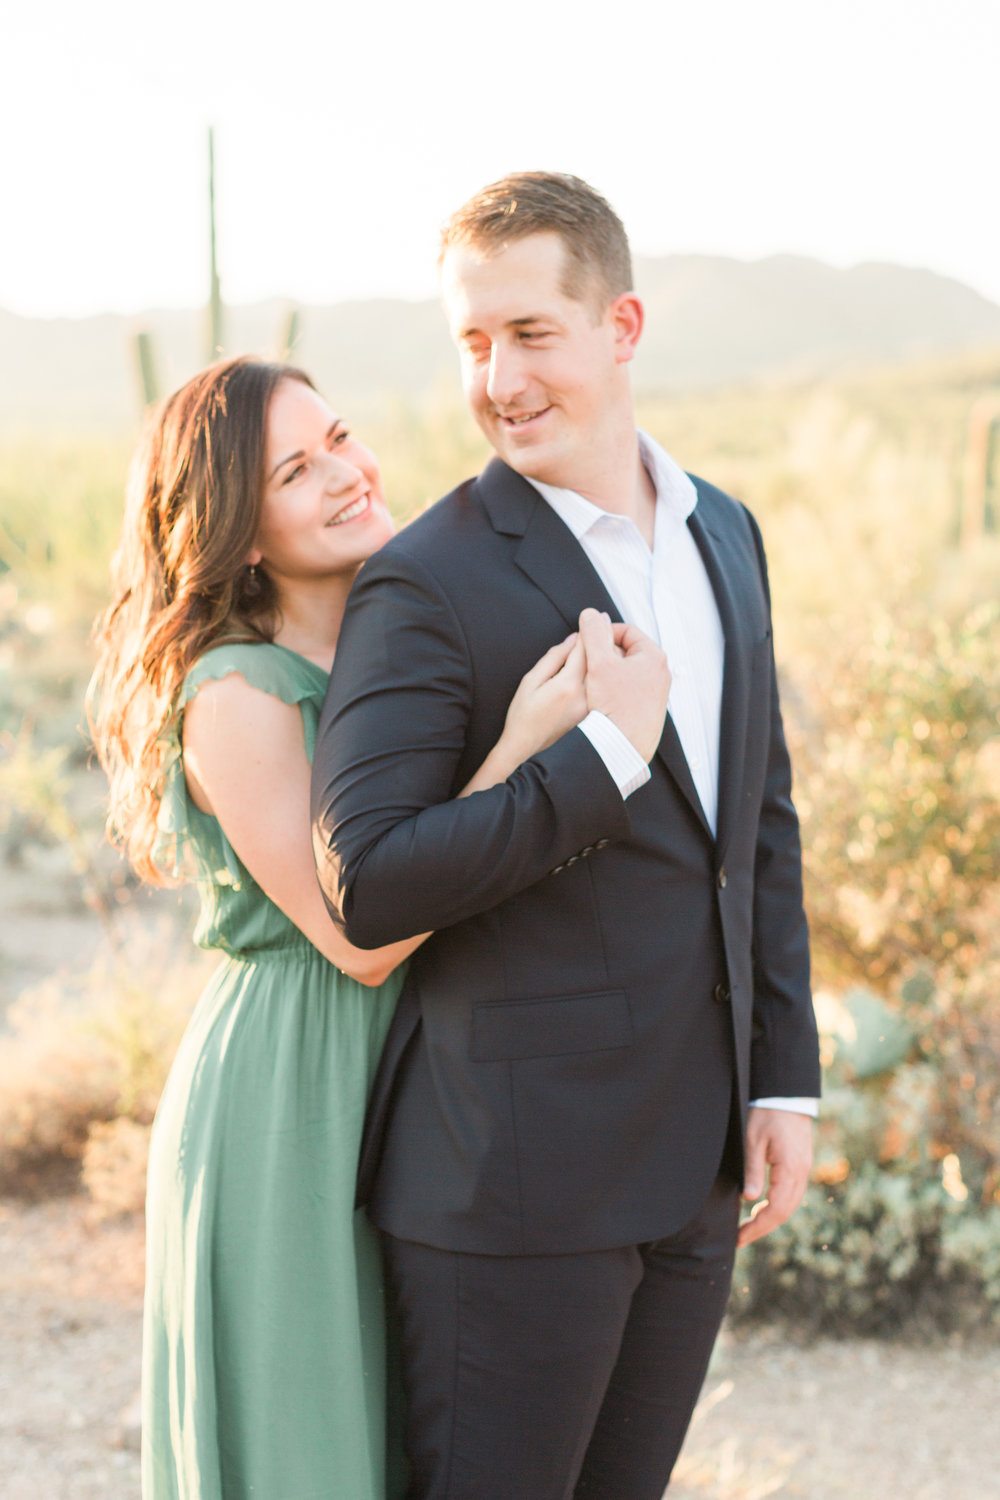 Gorgeous couple hugging at their engagement session in Tucson, AZ with the golden hour desert in the background.